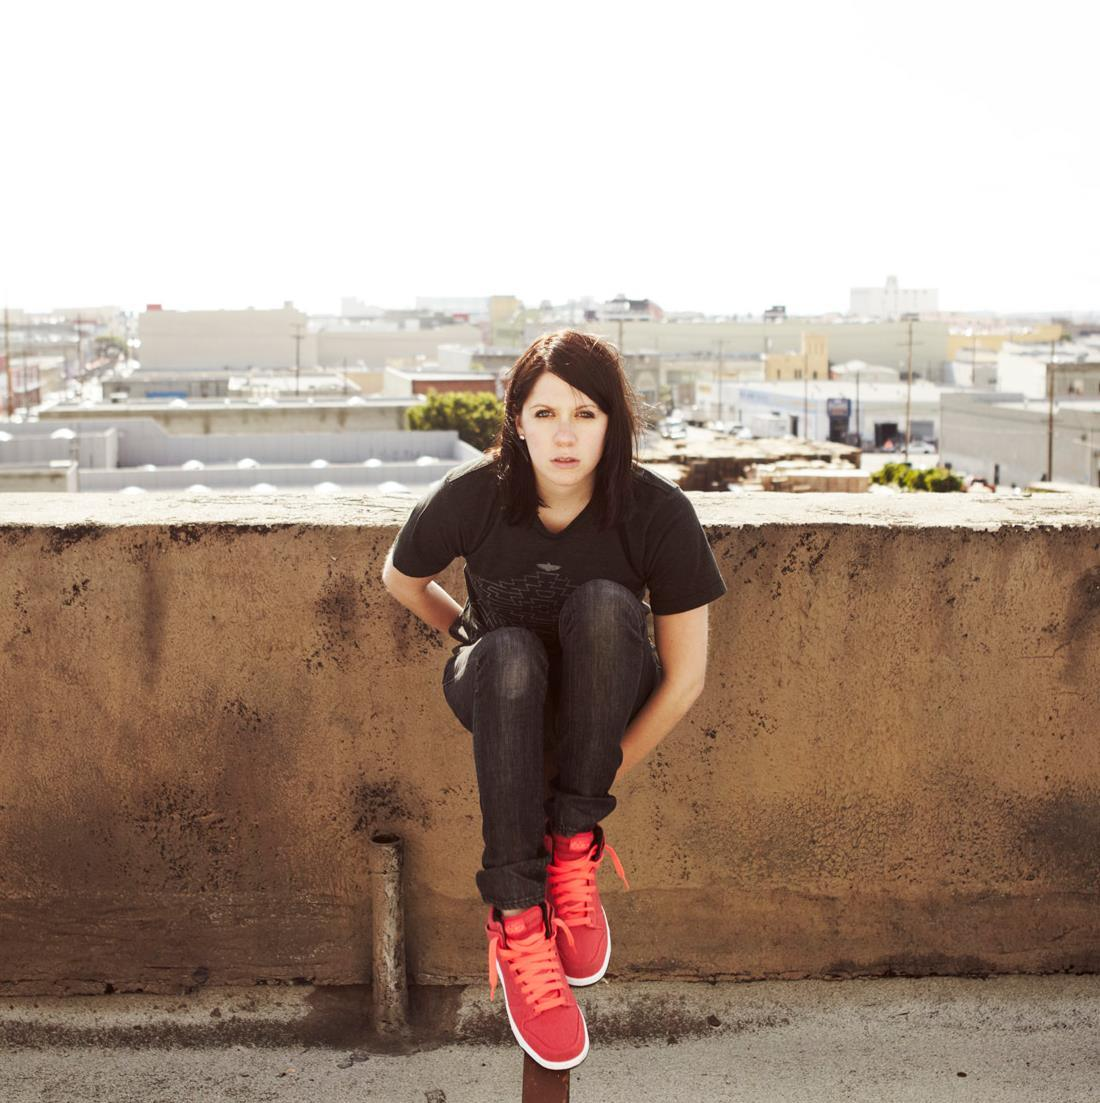 san francisco based k flay is a strong female voice in a